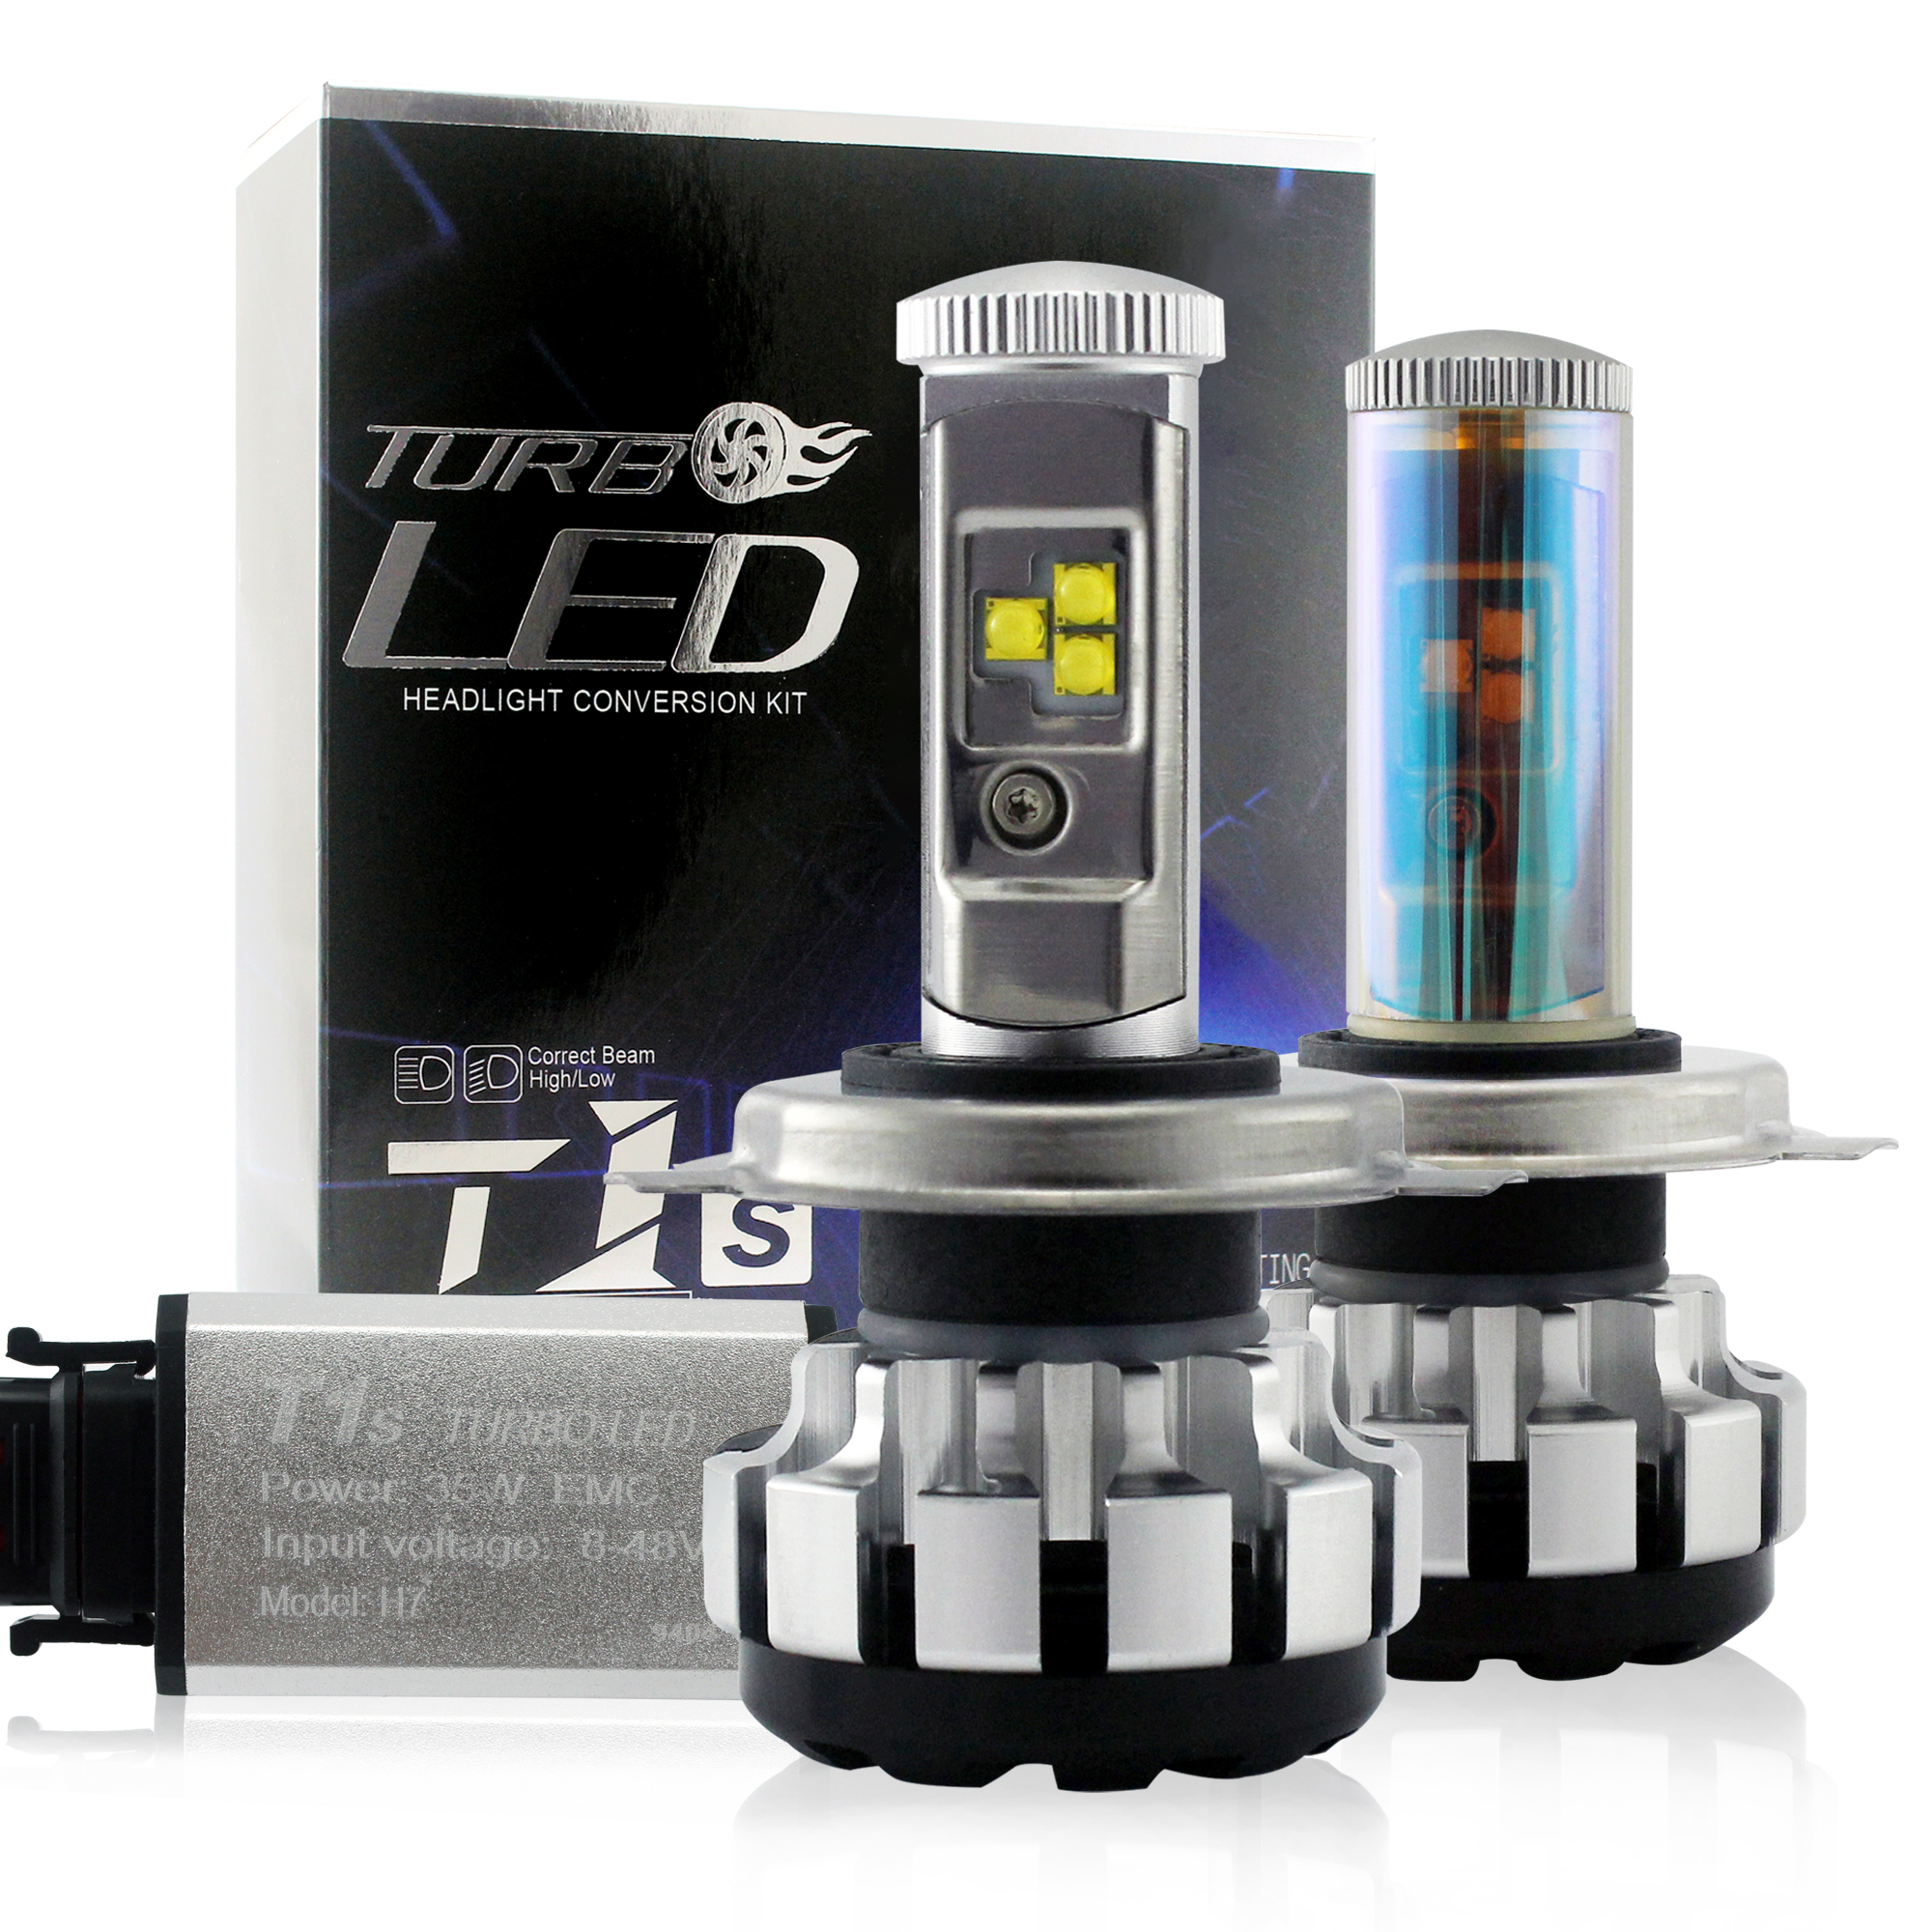 35W 40W led <strong>headlight</strong> New Turbo LED T1S LED head Lamp better than xenon <strong>hid</strong> lights H4 H7 H11 9005 9006